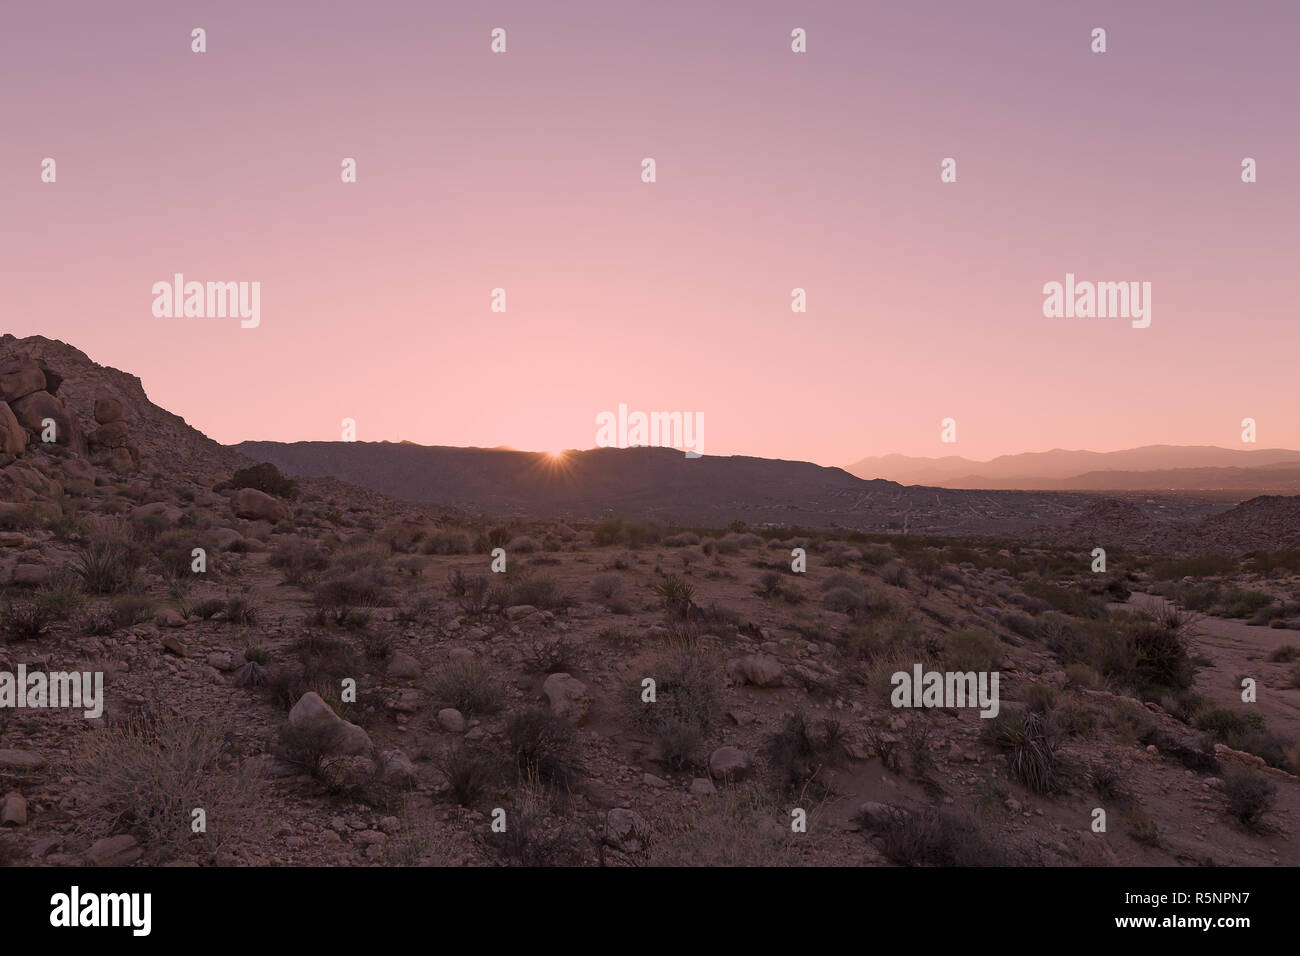 Stunning panorama of Mojave Desert at sunset. Rocky terrain with sparse vegetation and mountains chain on horizon. - Stock Image